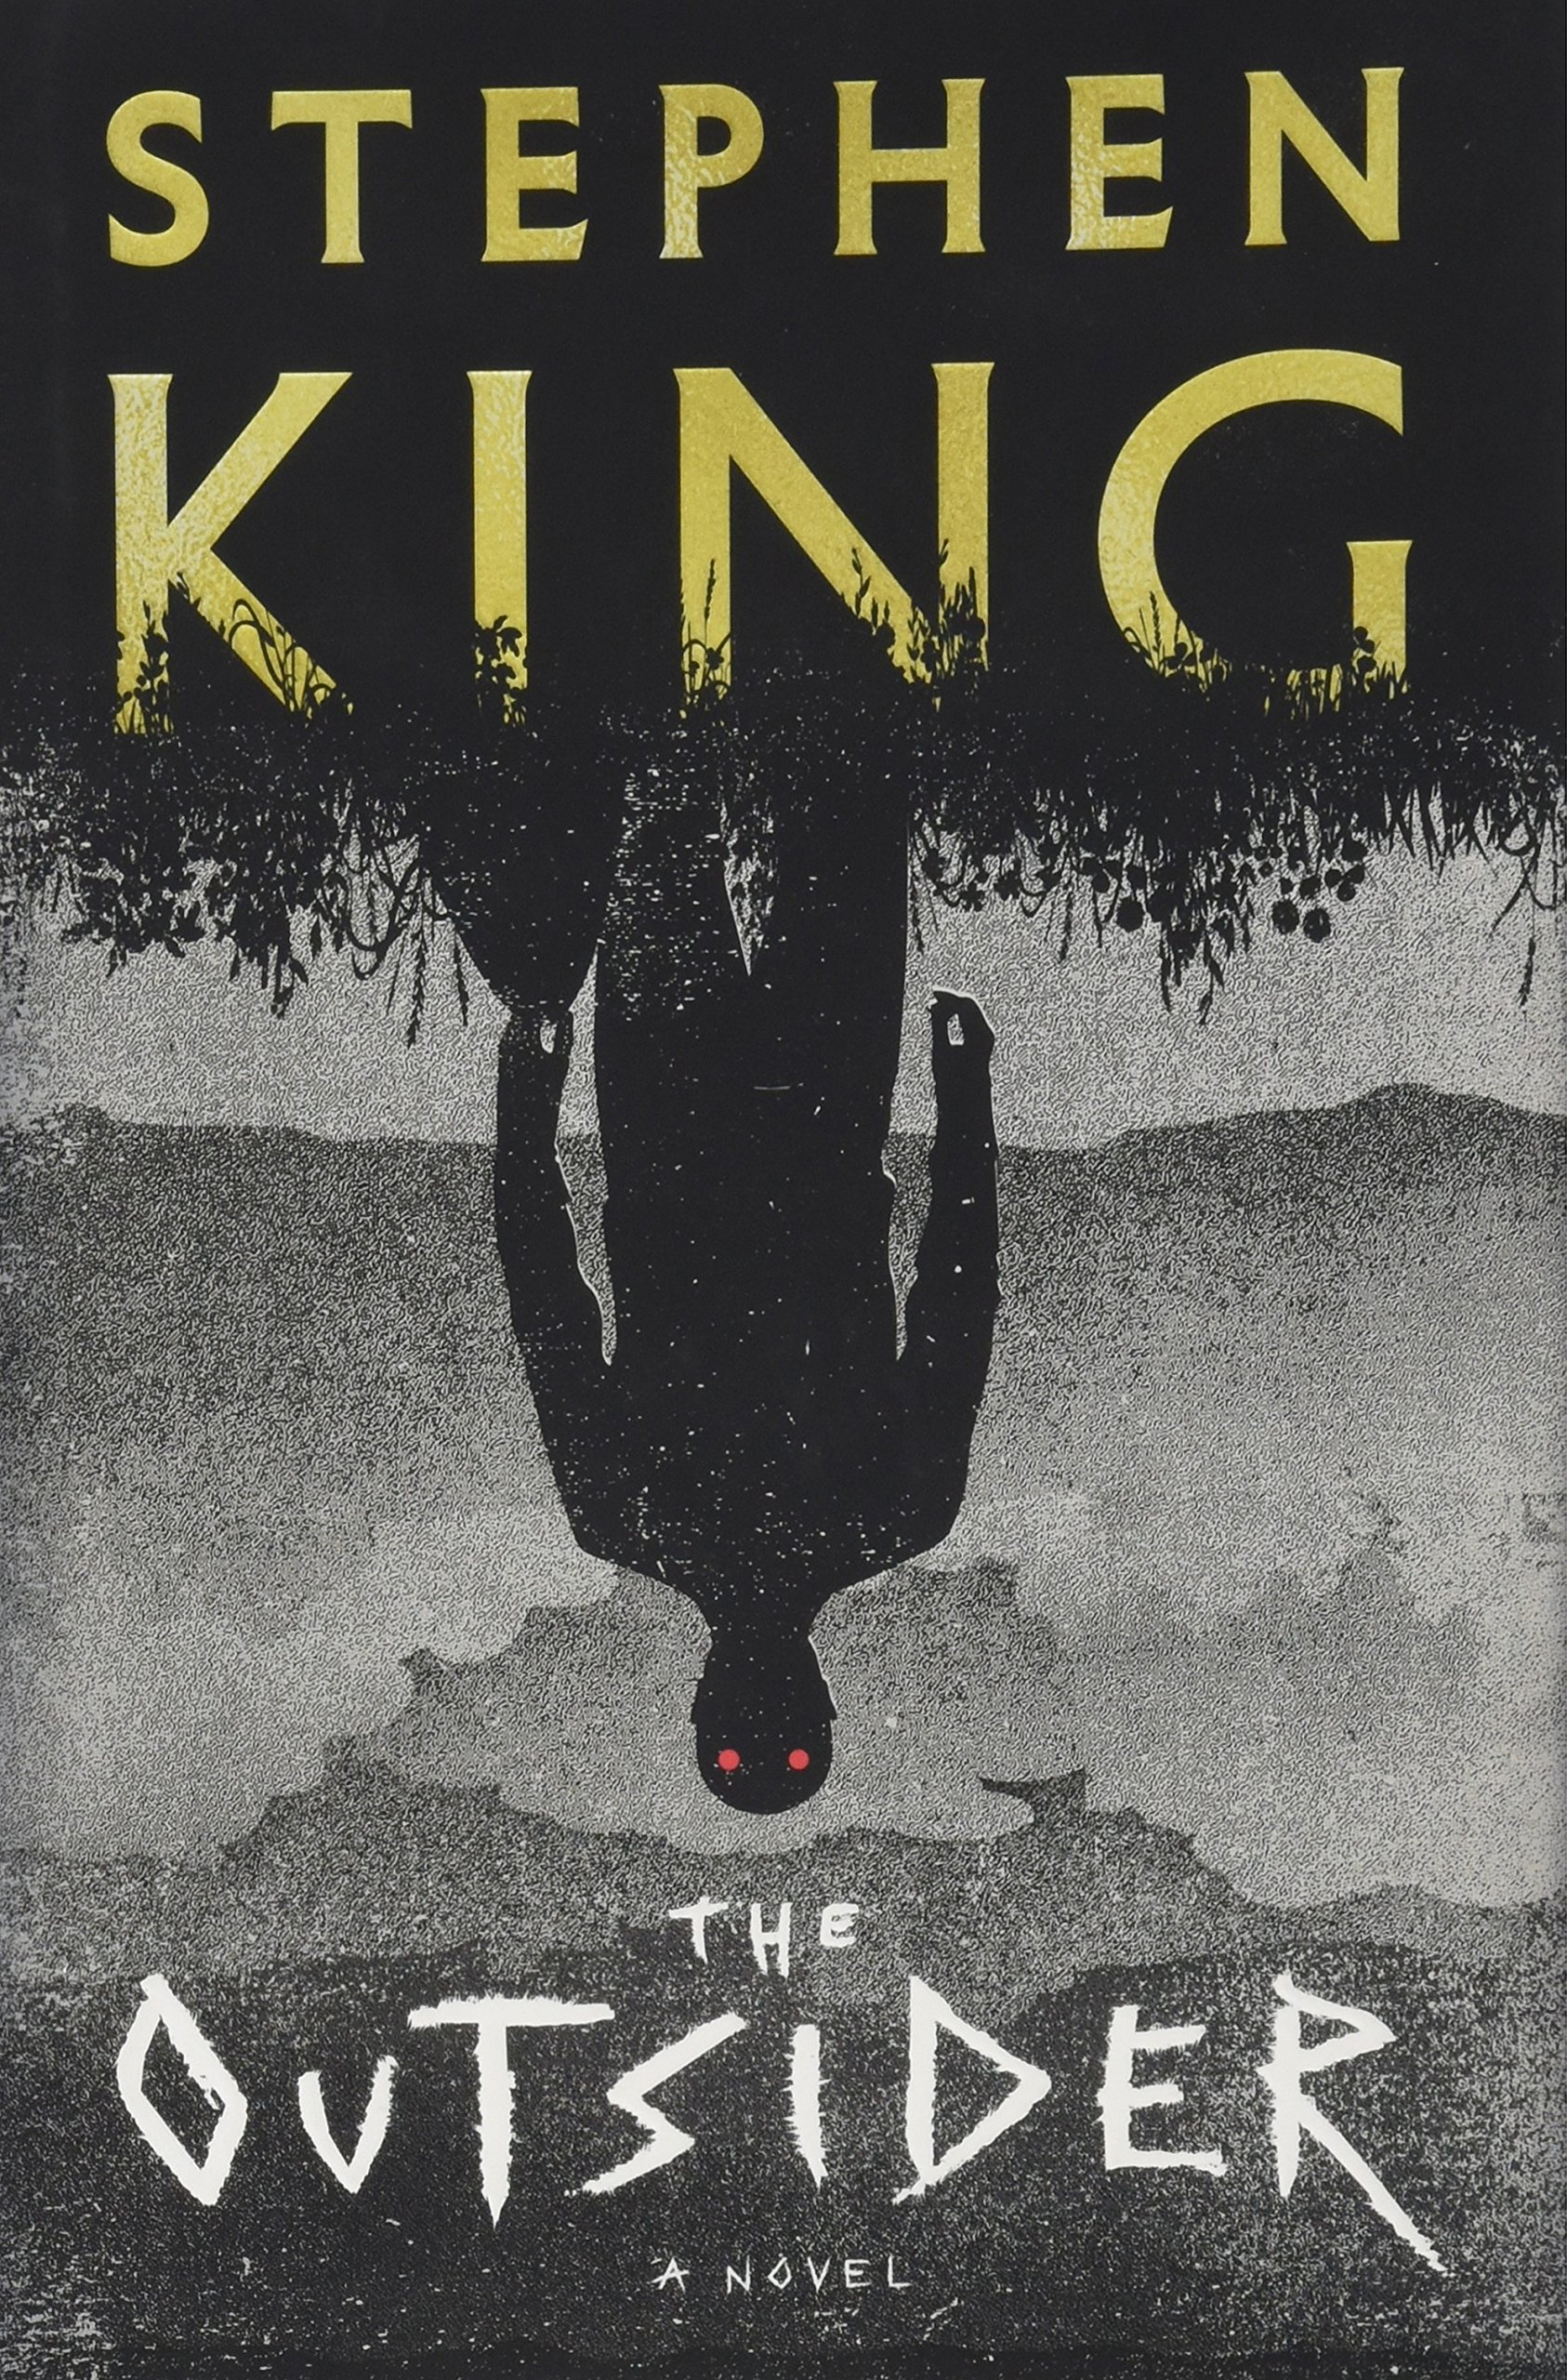 Stephen King – The Outsider